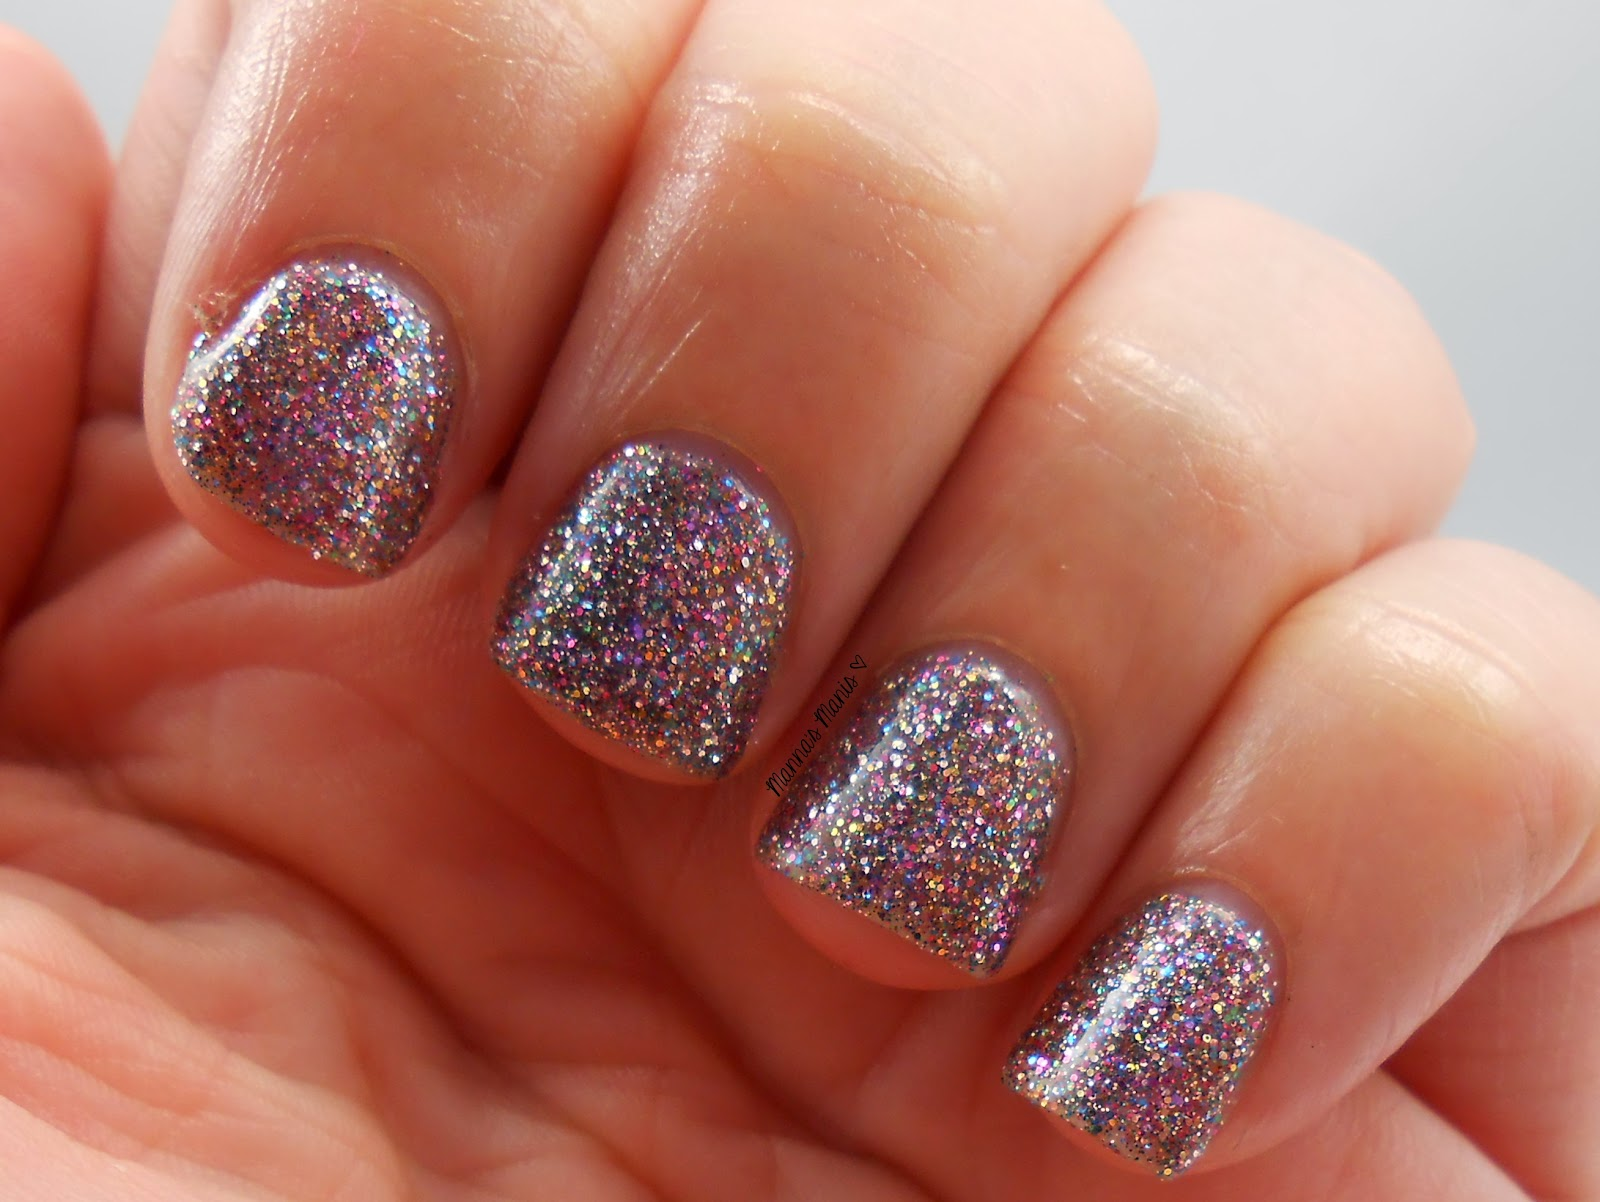 fingerpaints glisten here, a full coverage multicolored microglitter nail polish